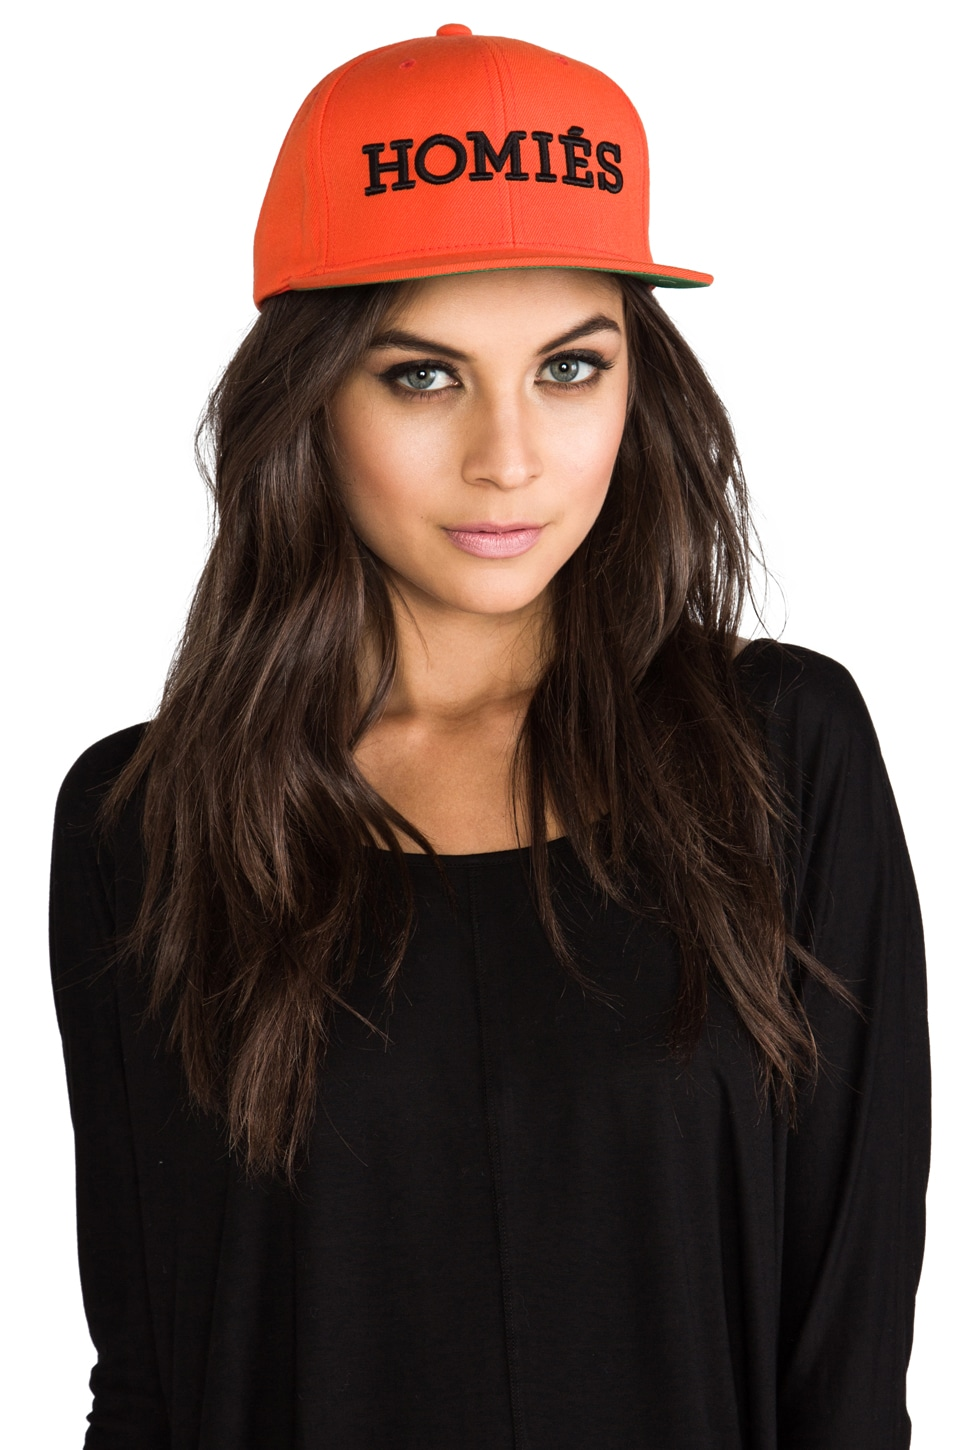 Brian Lichtenberg Homies Embroidered Caps in Orange/Black